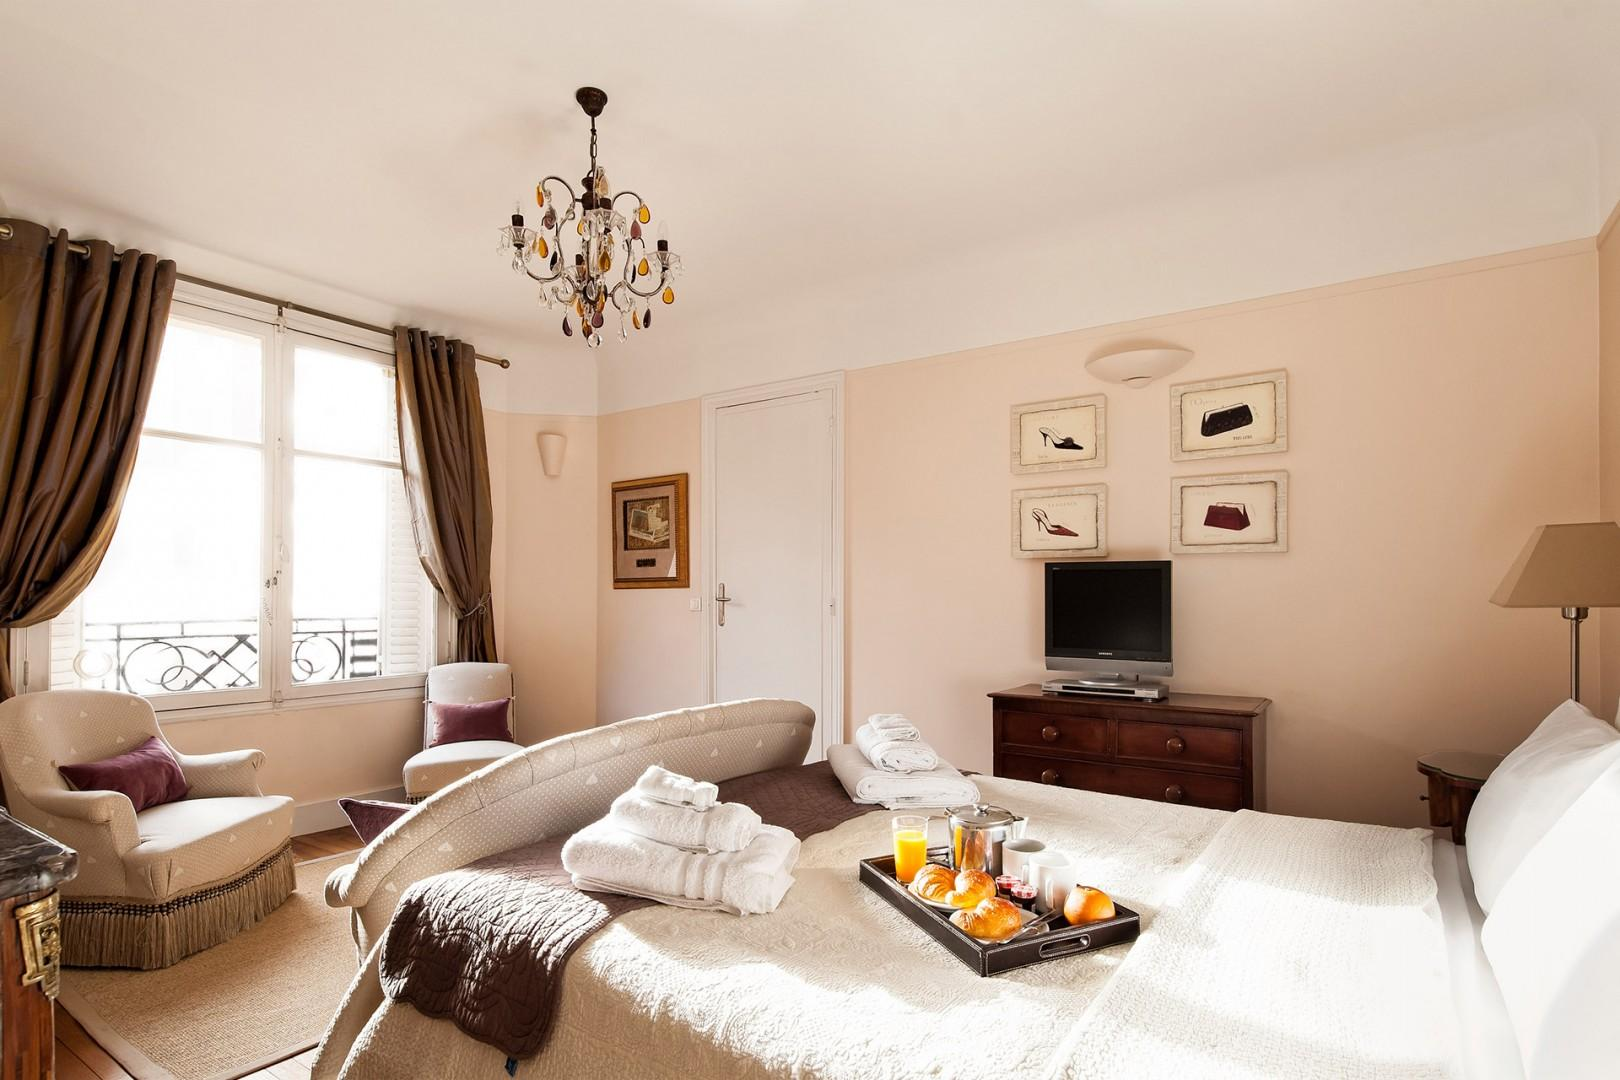 Relax in the spacious bedroom with a comfortable bed and en suite bathroom.